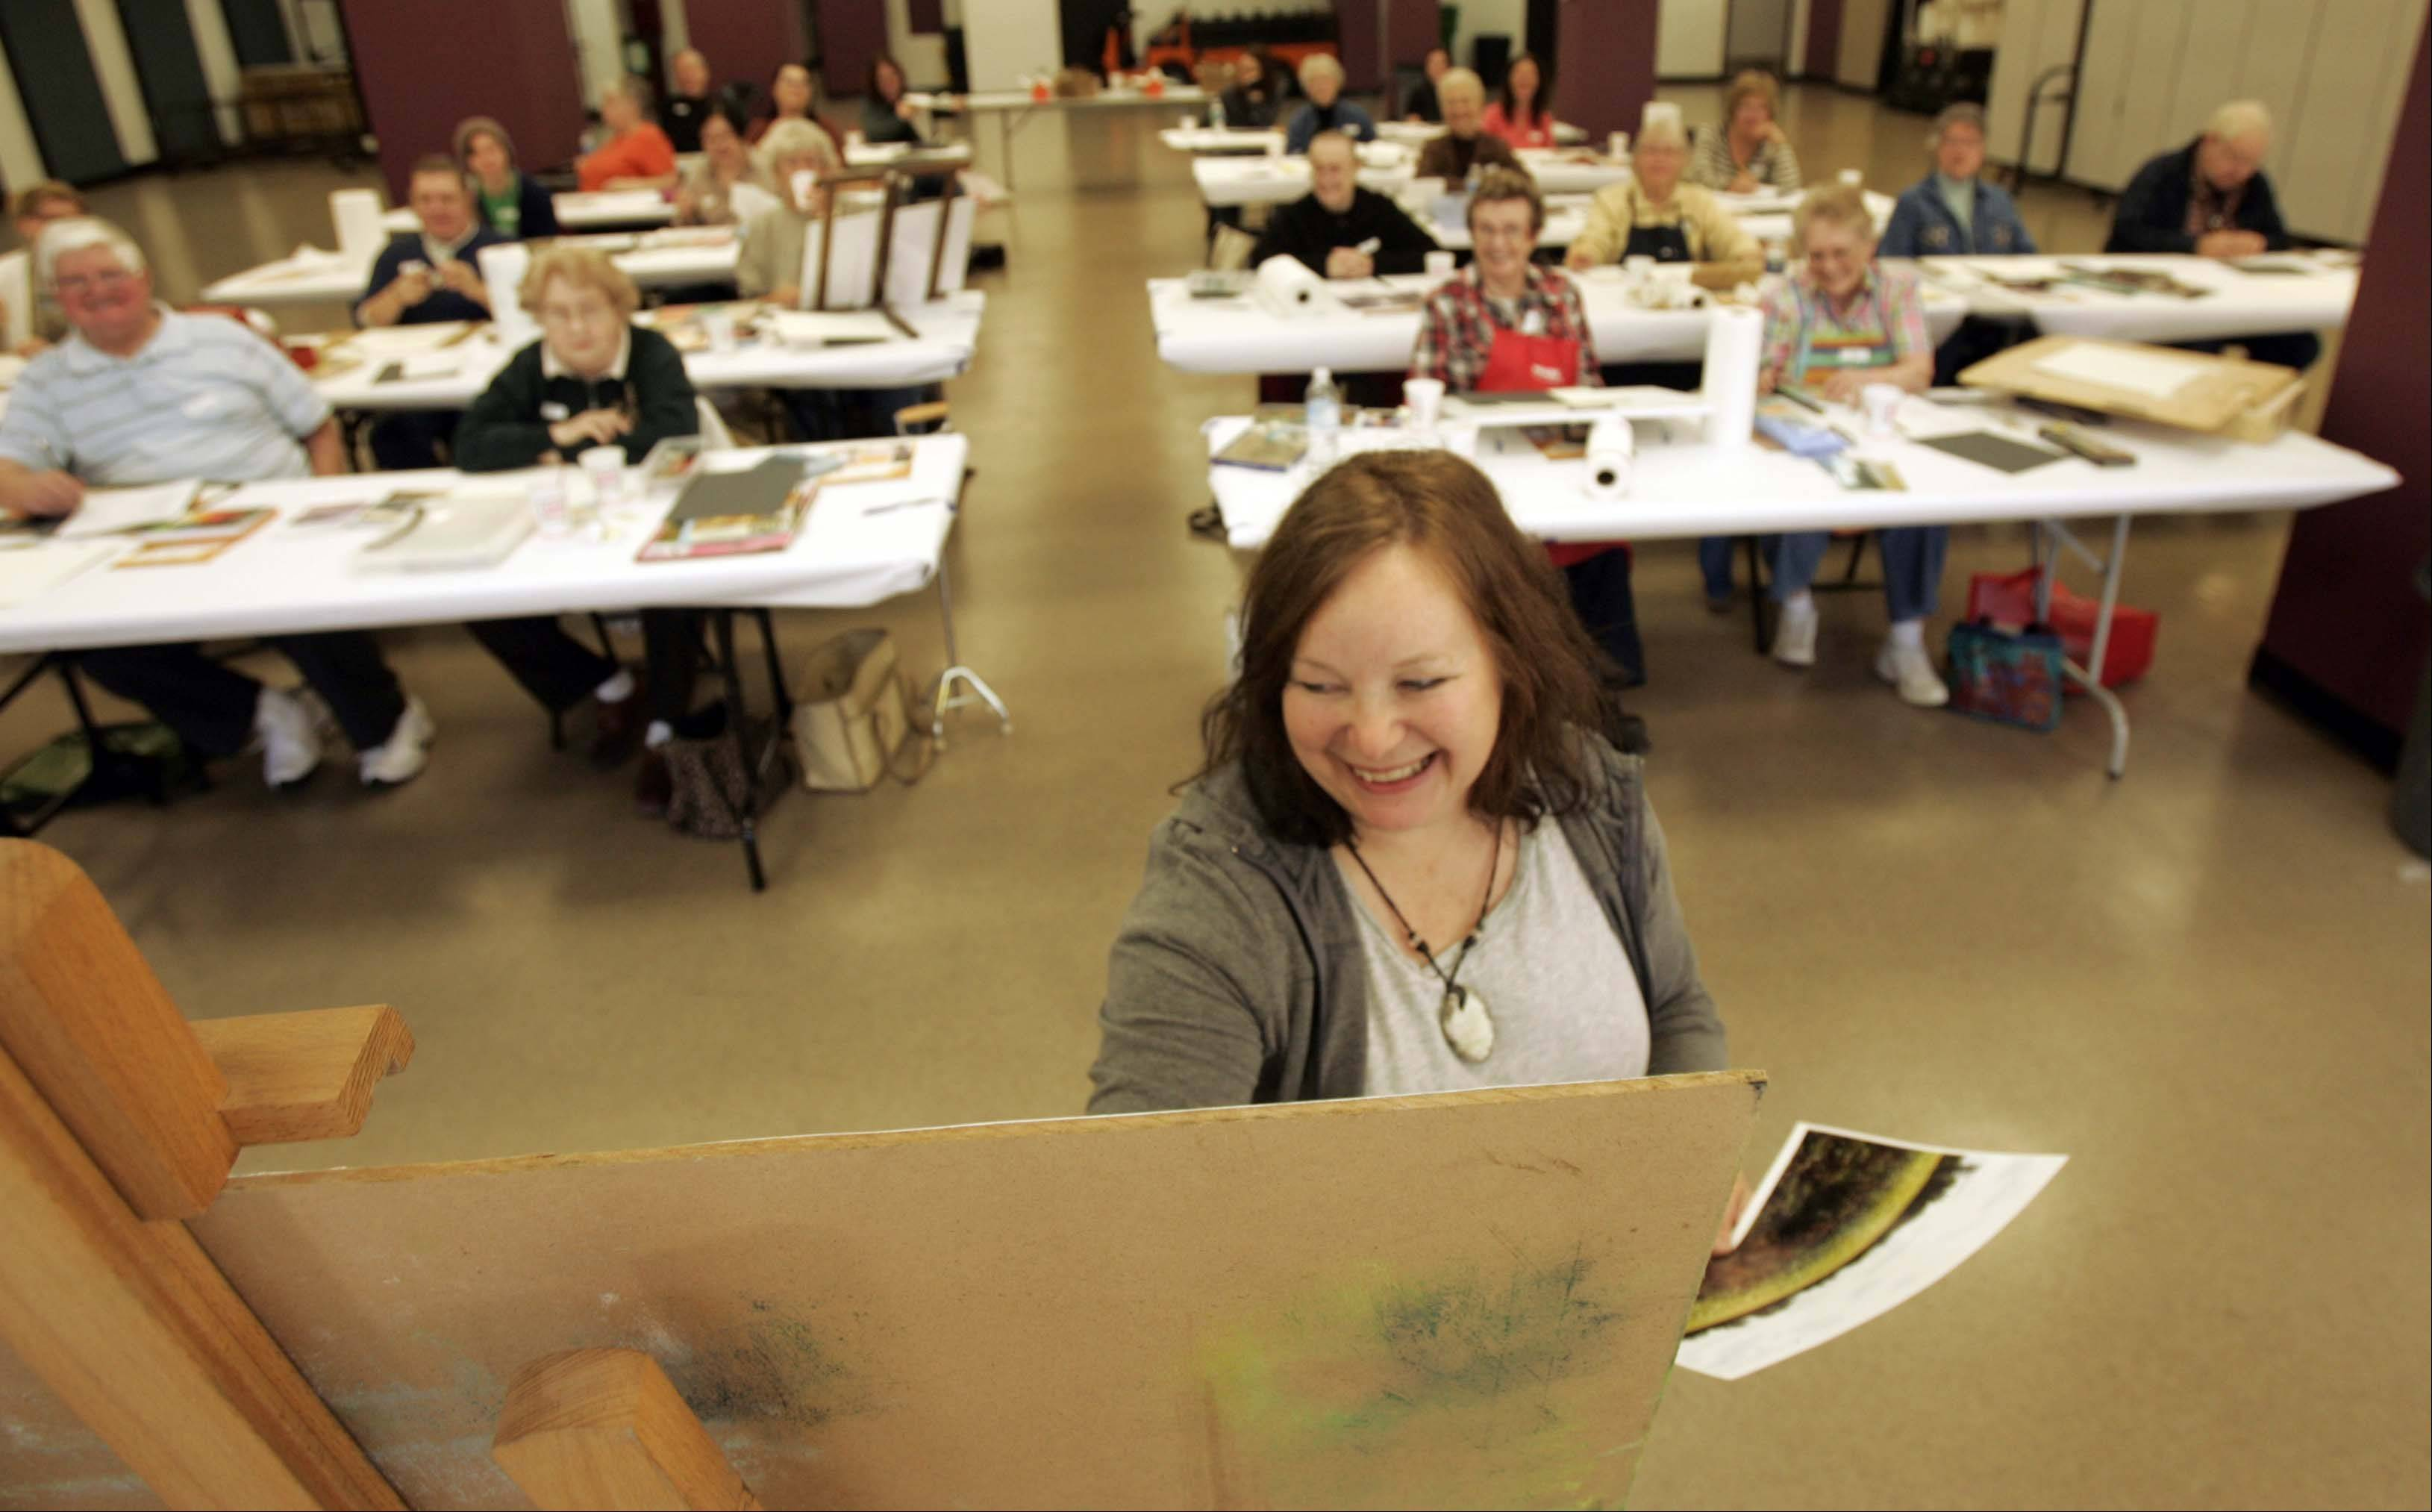 Michigan-based artist Susan Henshaw, shown here in 2011, returns to Elgin Saturday to teach a pastel techniques workshop part of the Elgin FallBack Arts Festival. This is the third edition of the festival.